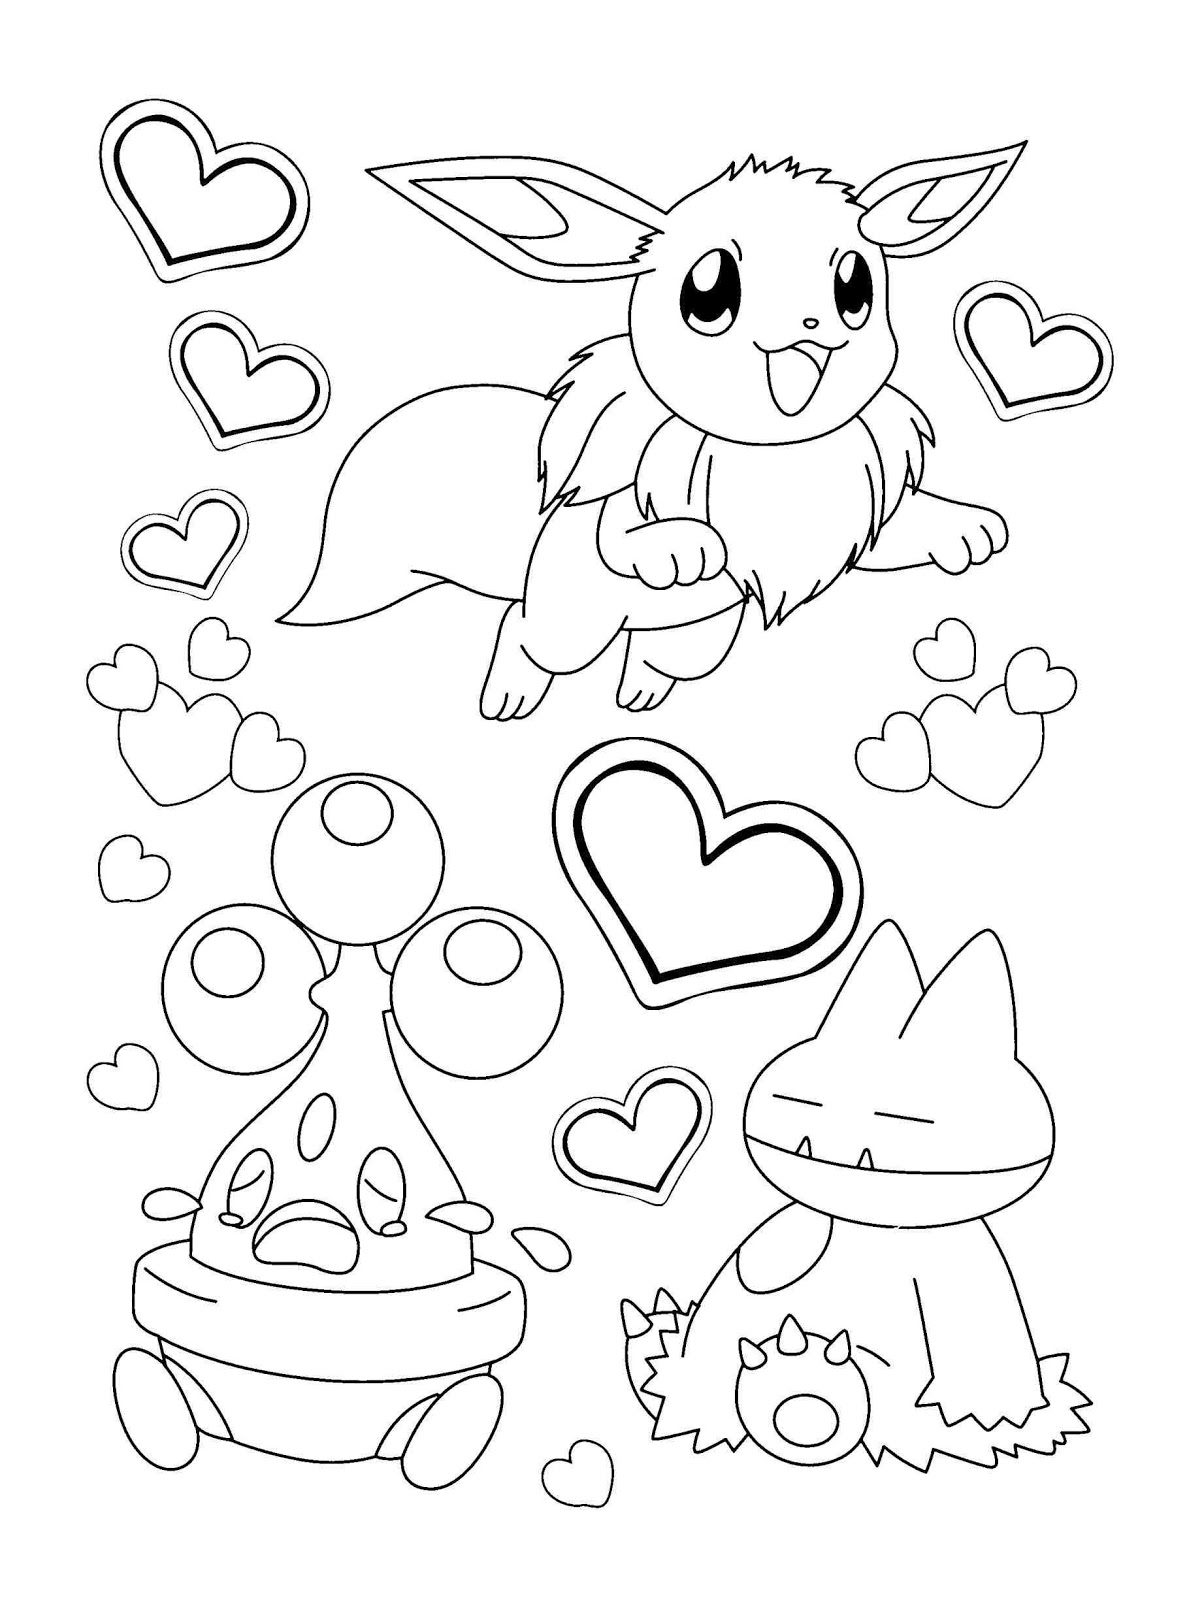 printable coloring pokemon cards coloring page pokemon coloring pages 414 cards coloring printable pokemon